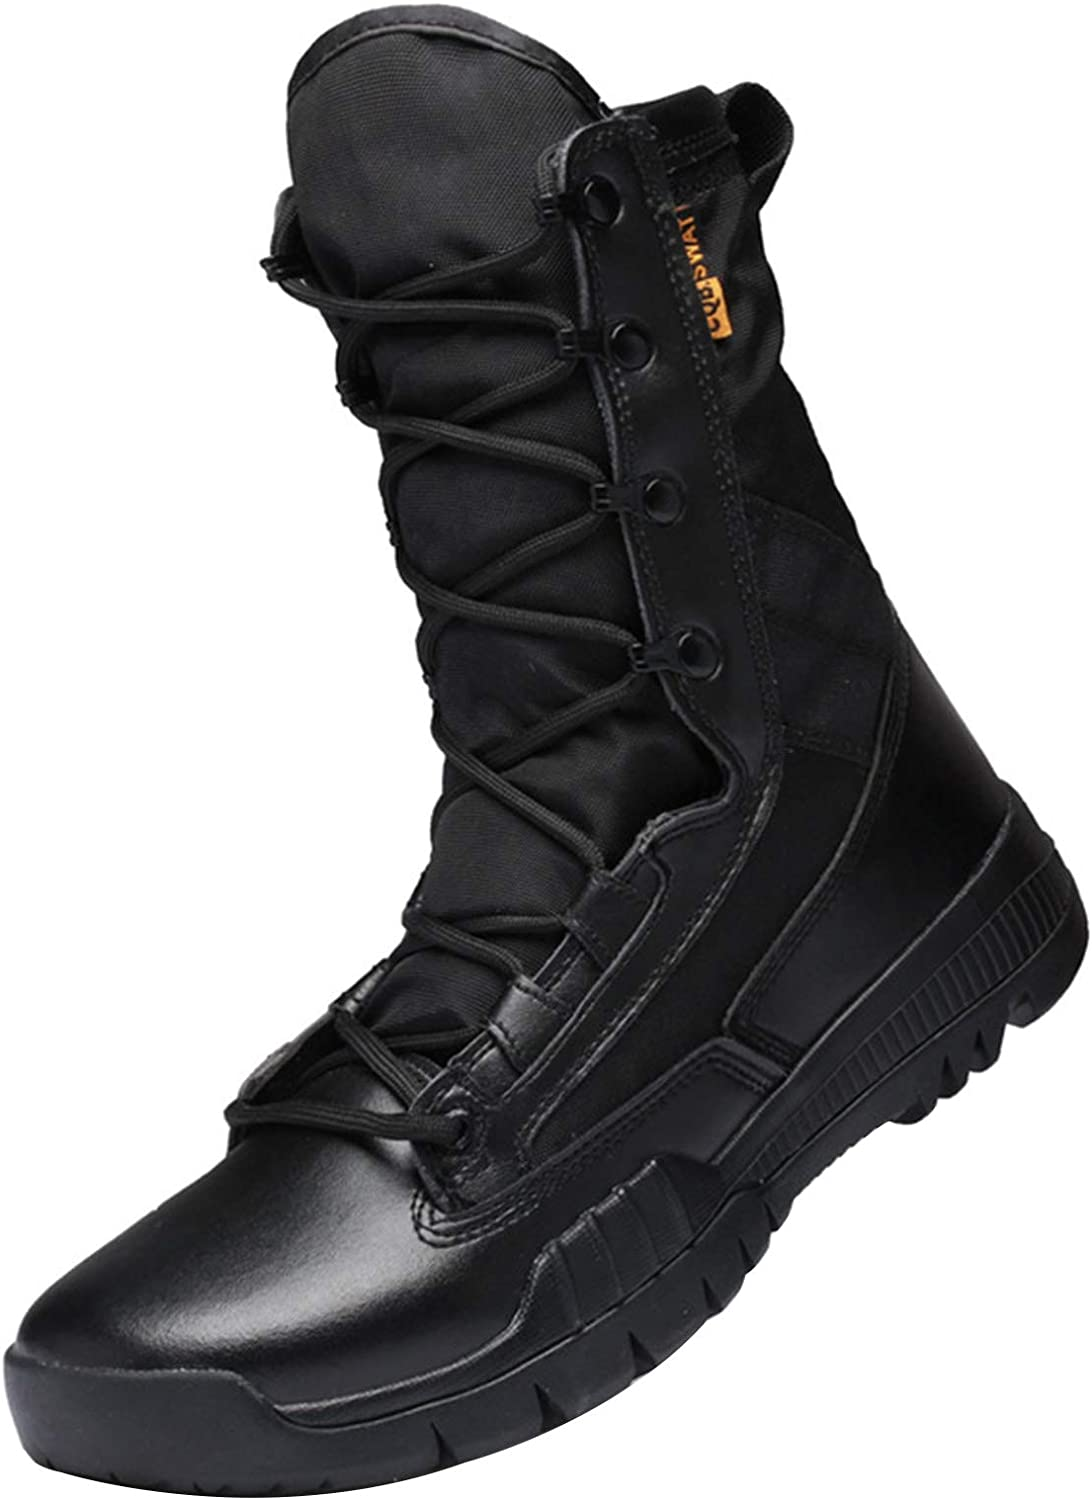 Men's Outdoor High-top Combat Boots, Lightweight and Breathable Hiking Boots, Camping Desert Boots, Safety Work Shoes, Used for Hiking, Hunting, Camping